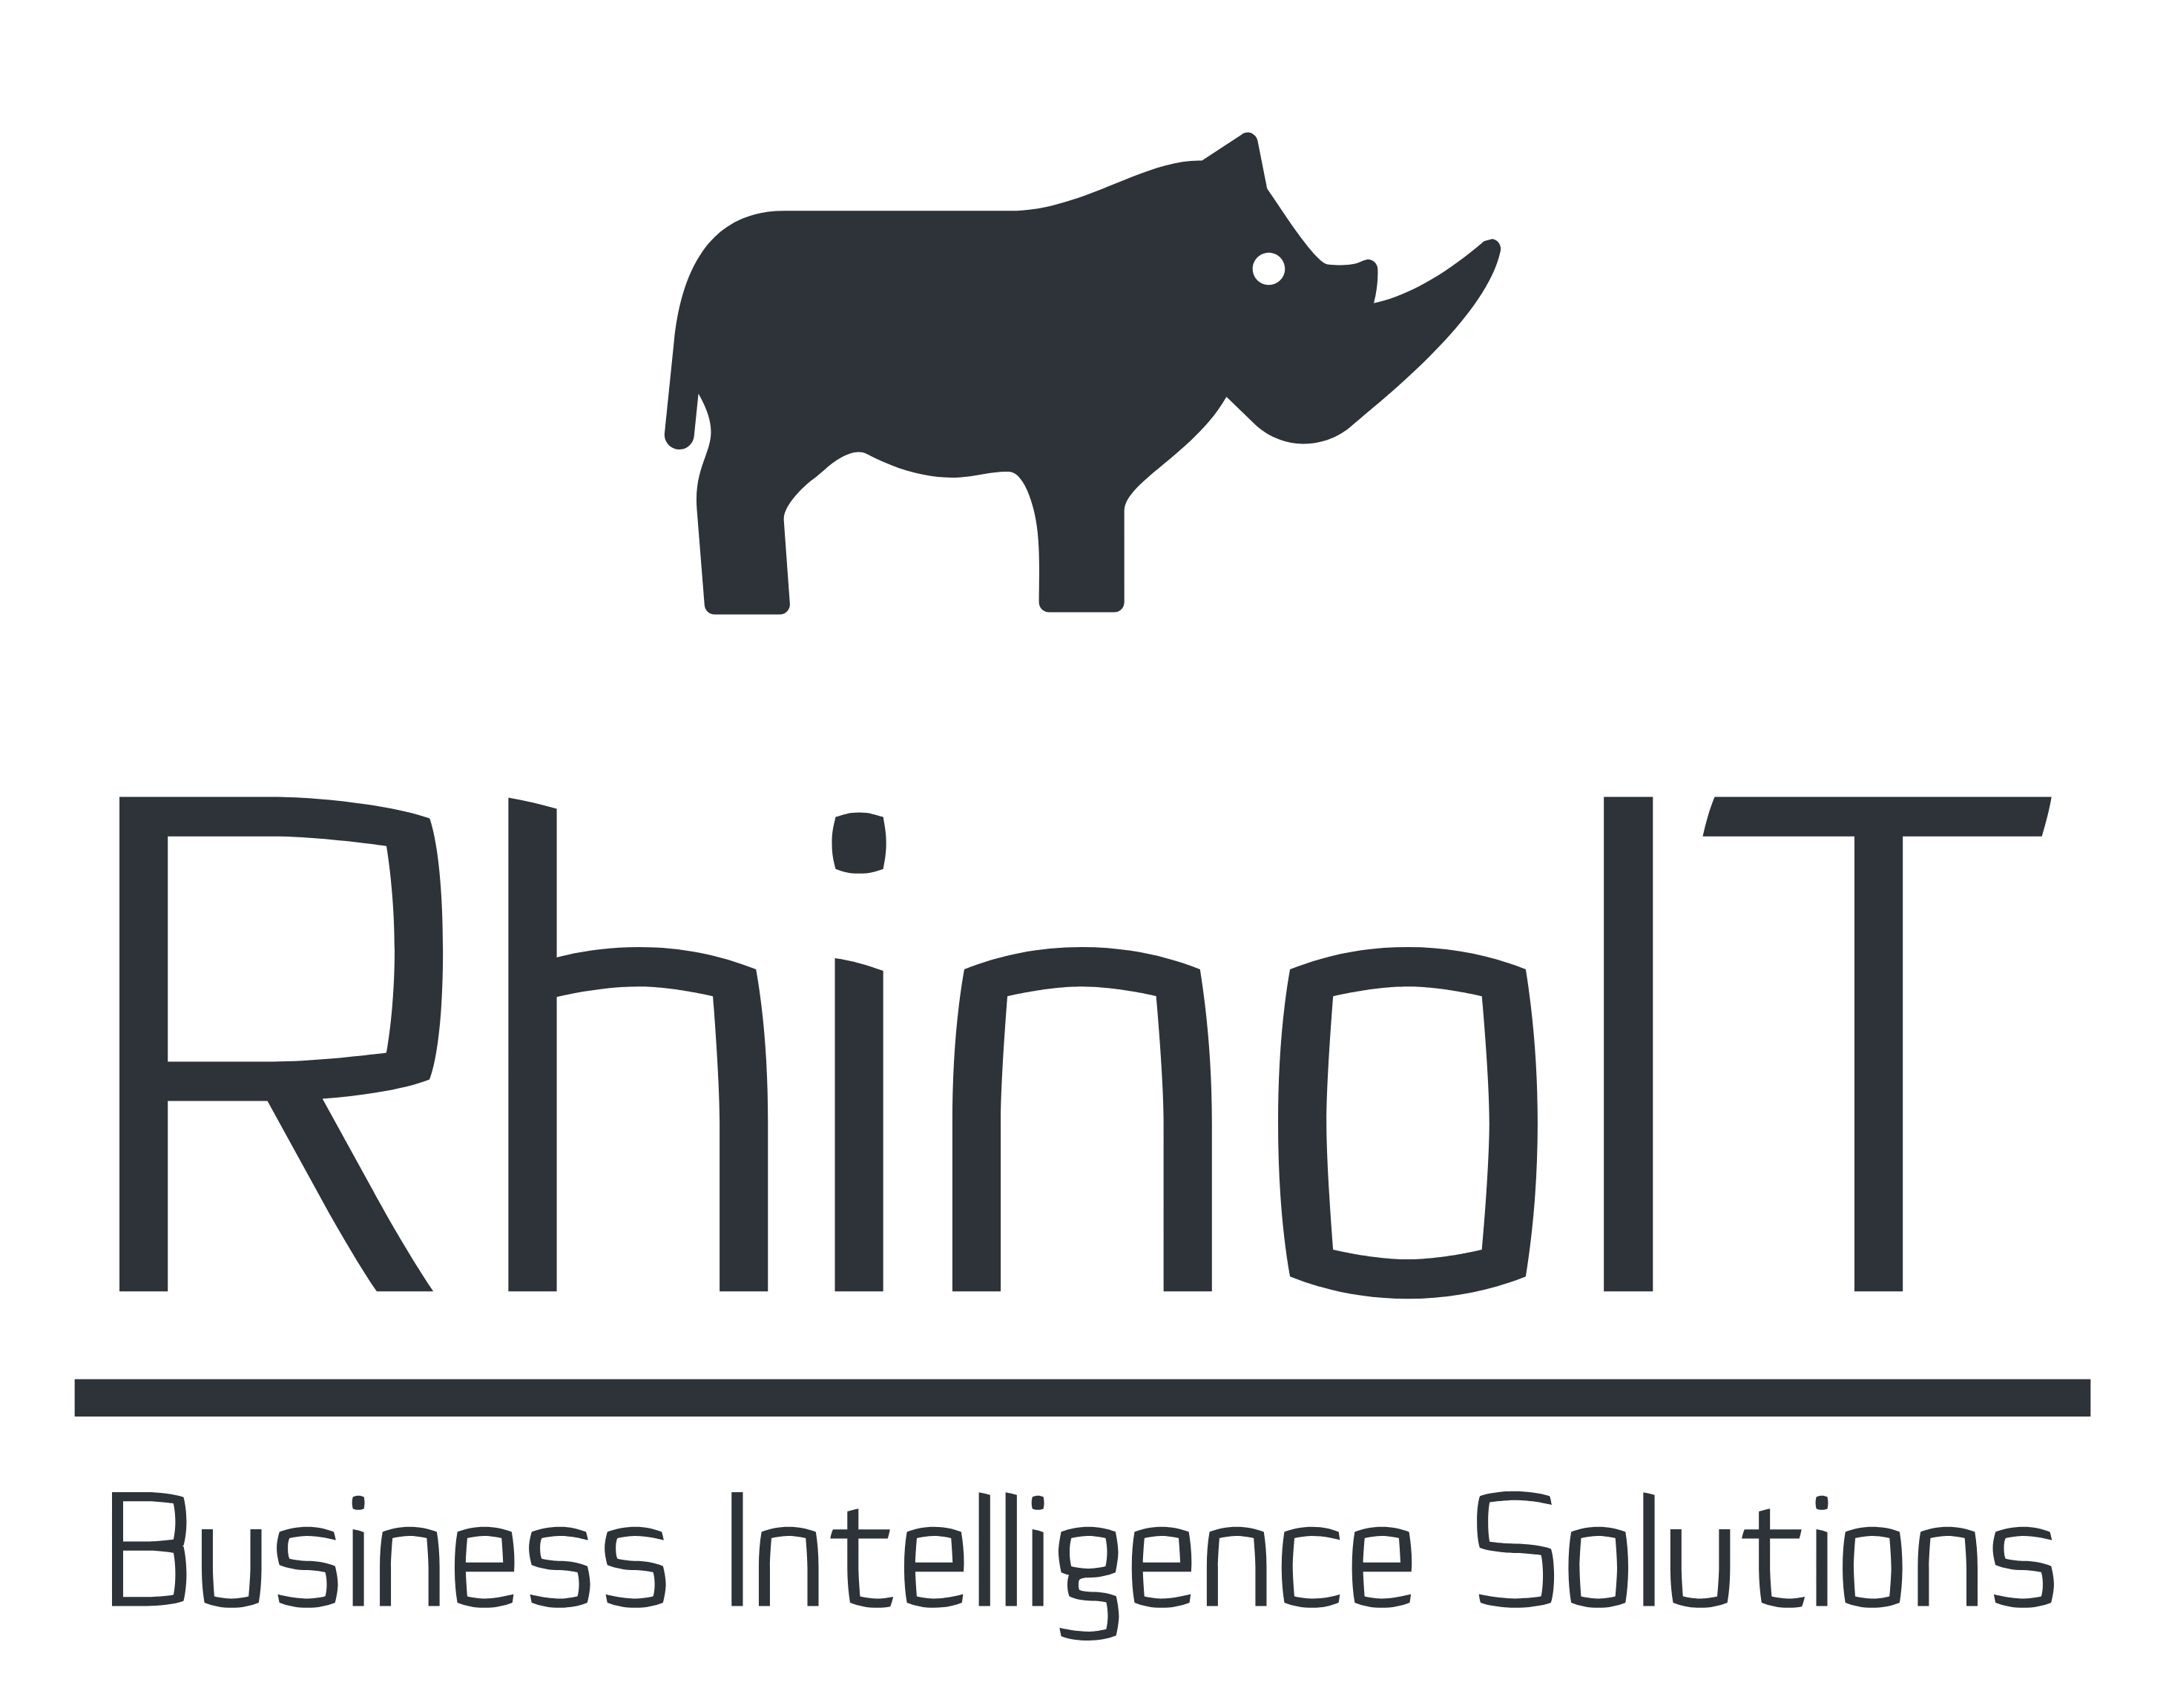 RhinoIT – Business Intelligence Solutions